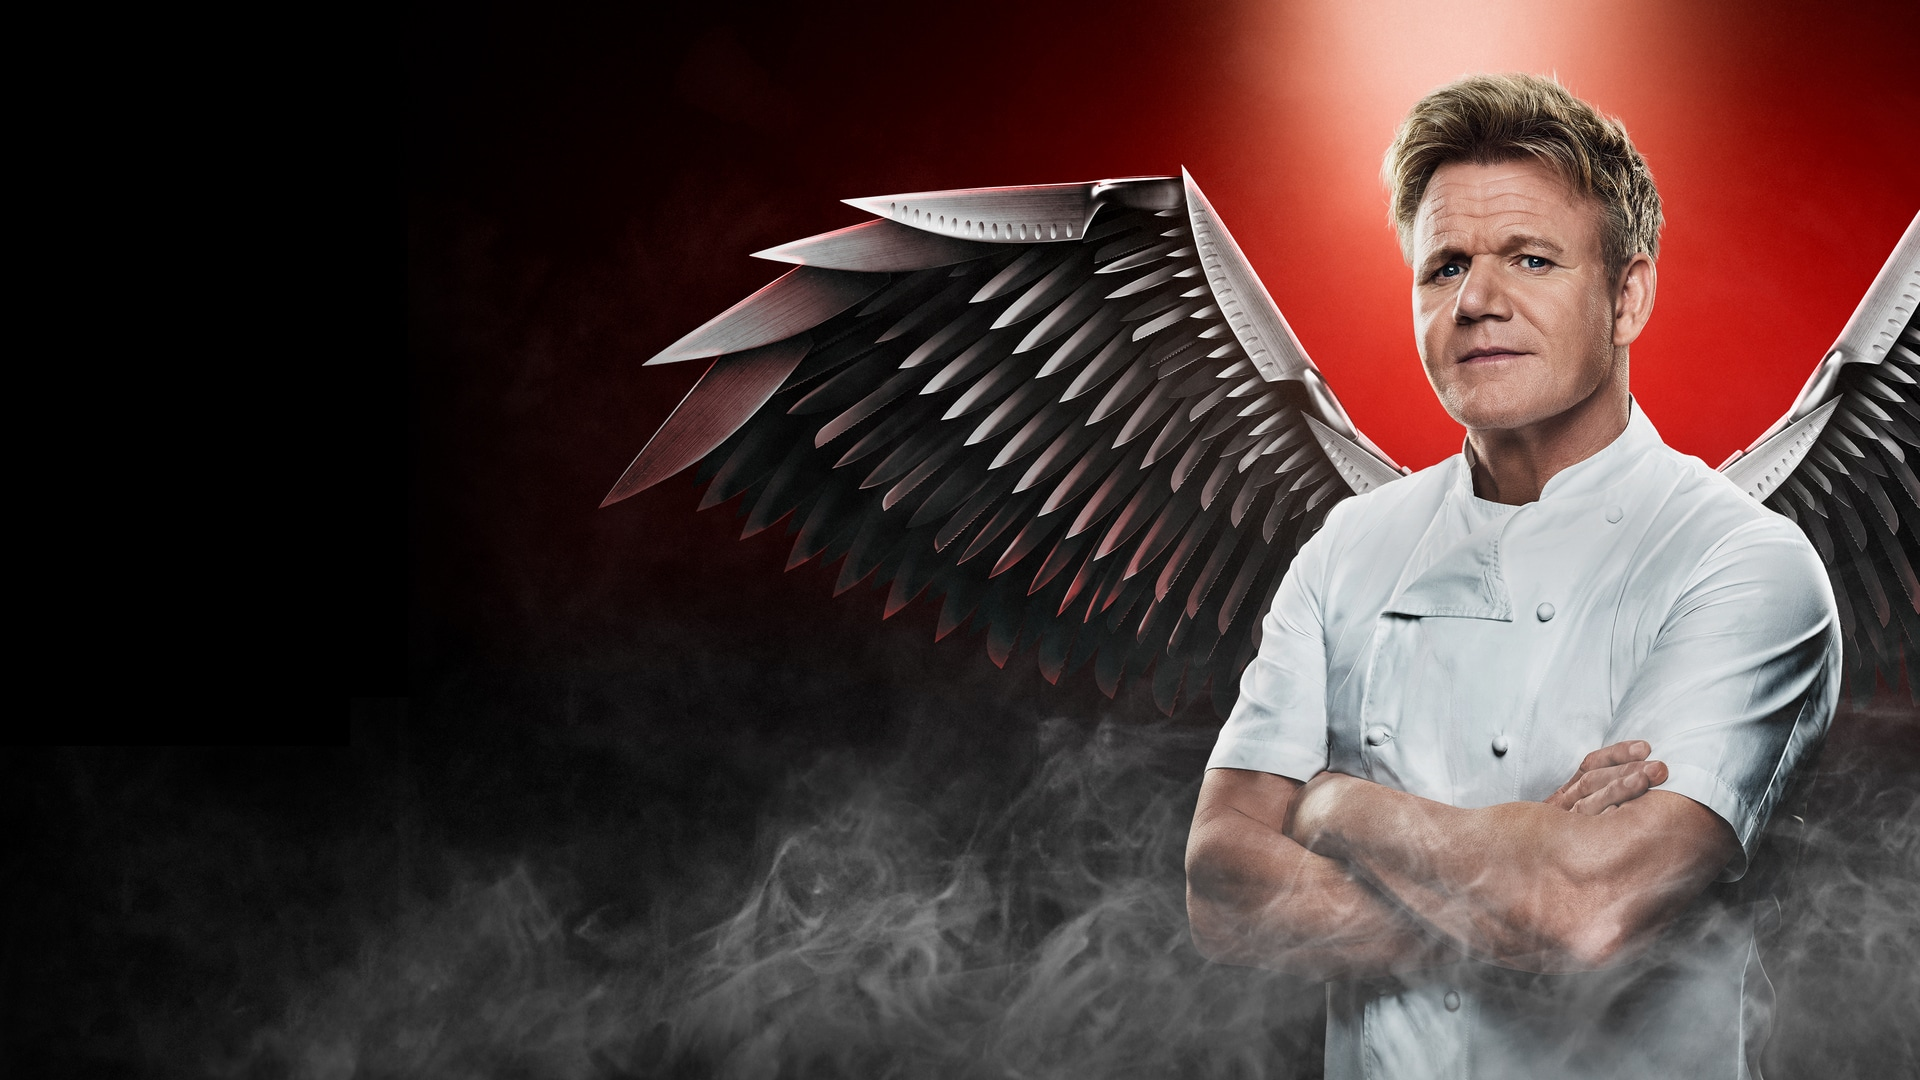 hells kitchen fox premieres friday sept 28 at 900 pm season 17 - Hells Kitchen Season 14